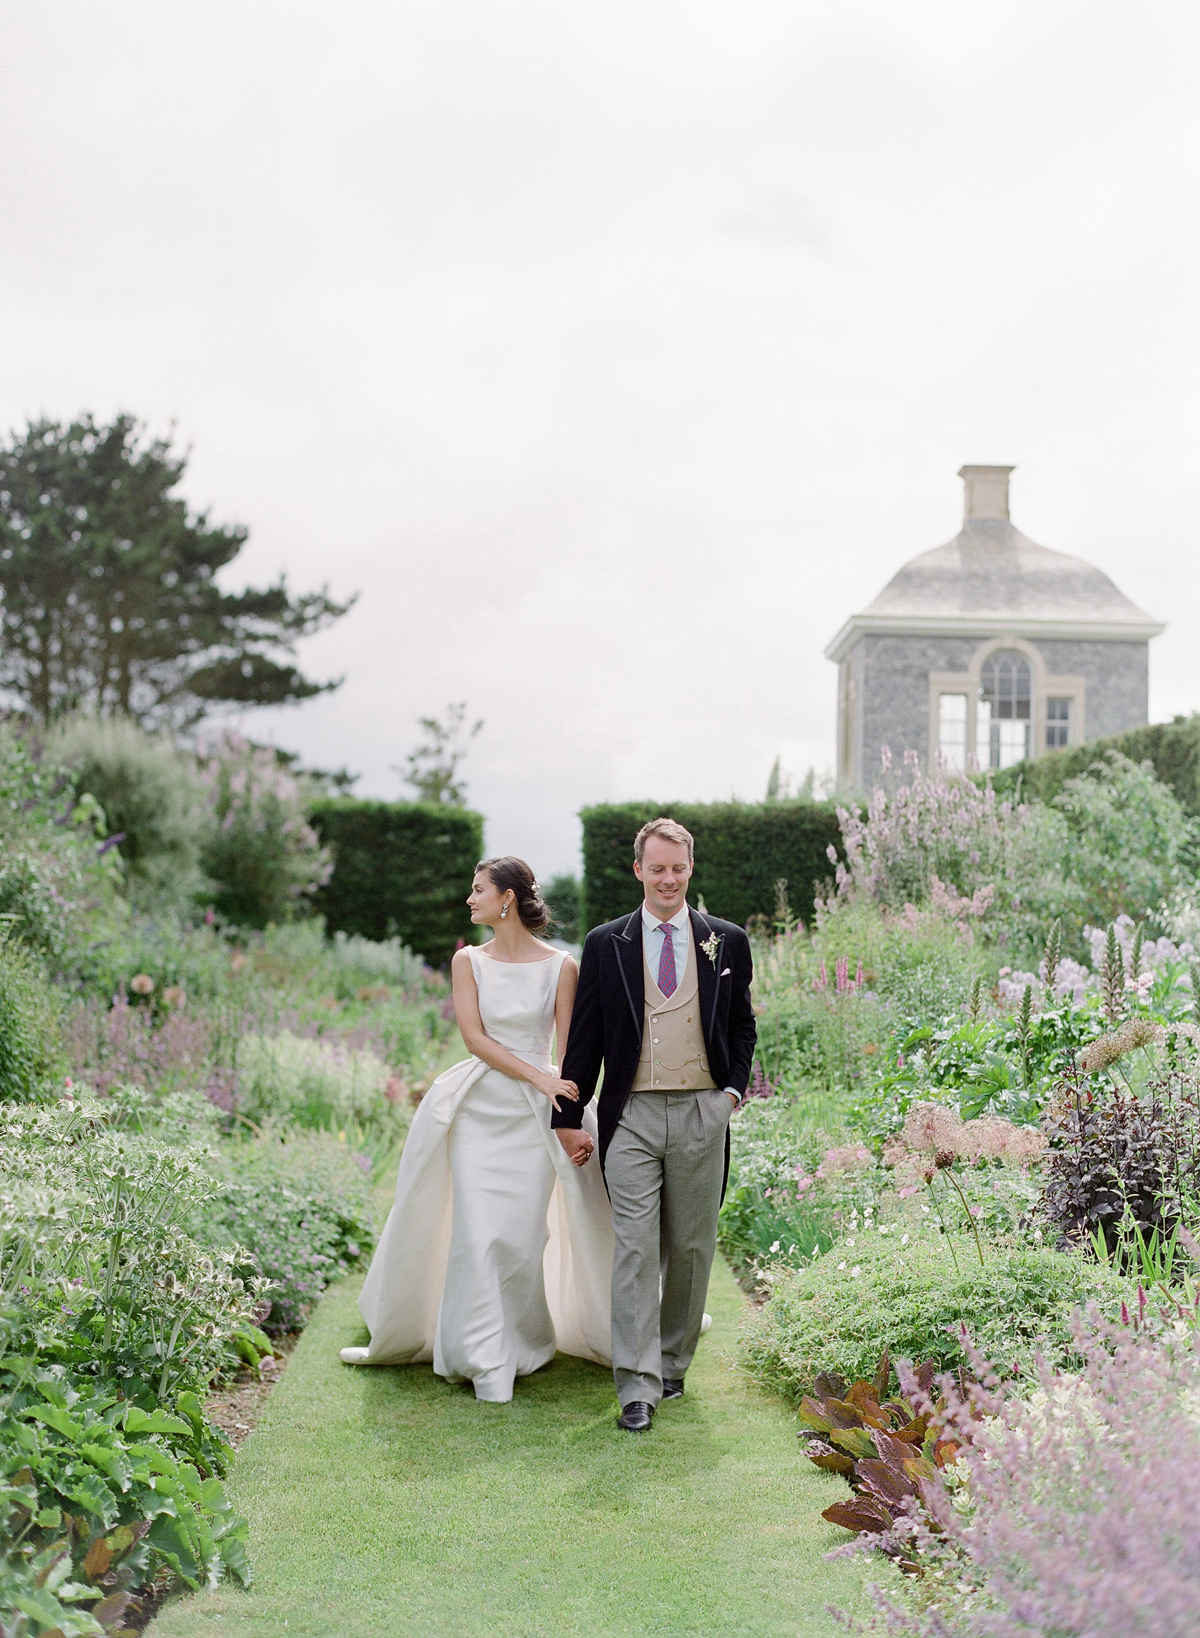 peony matthew england wedding couple walking through garden